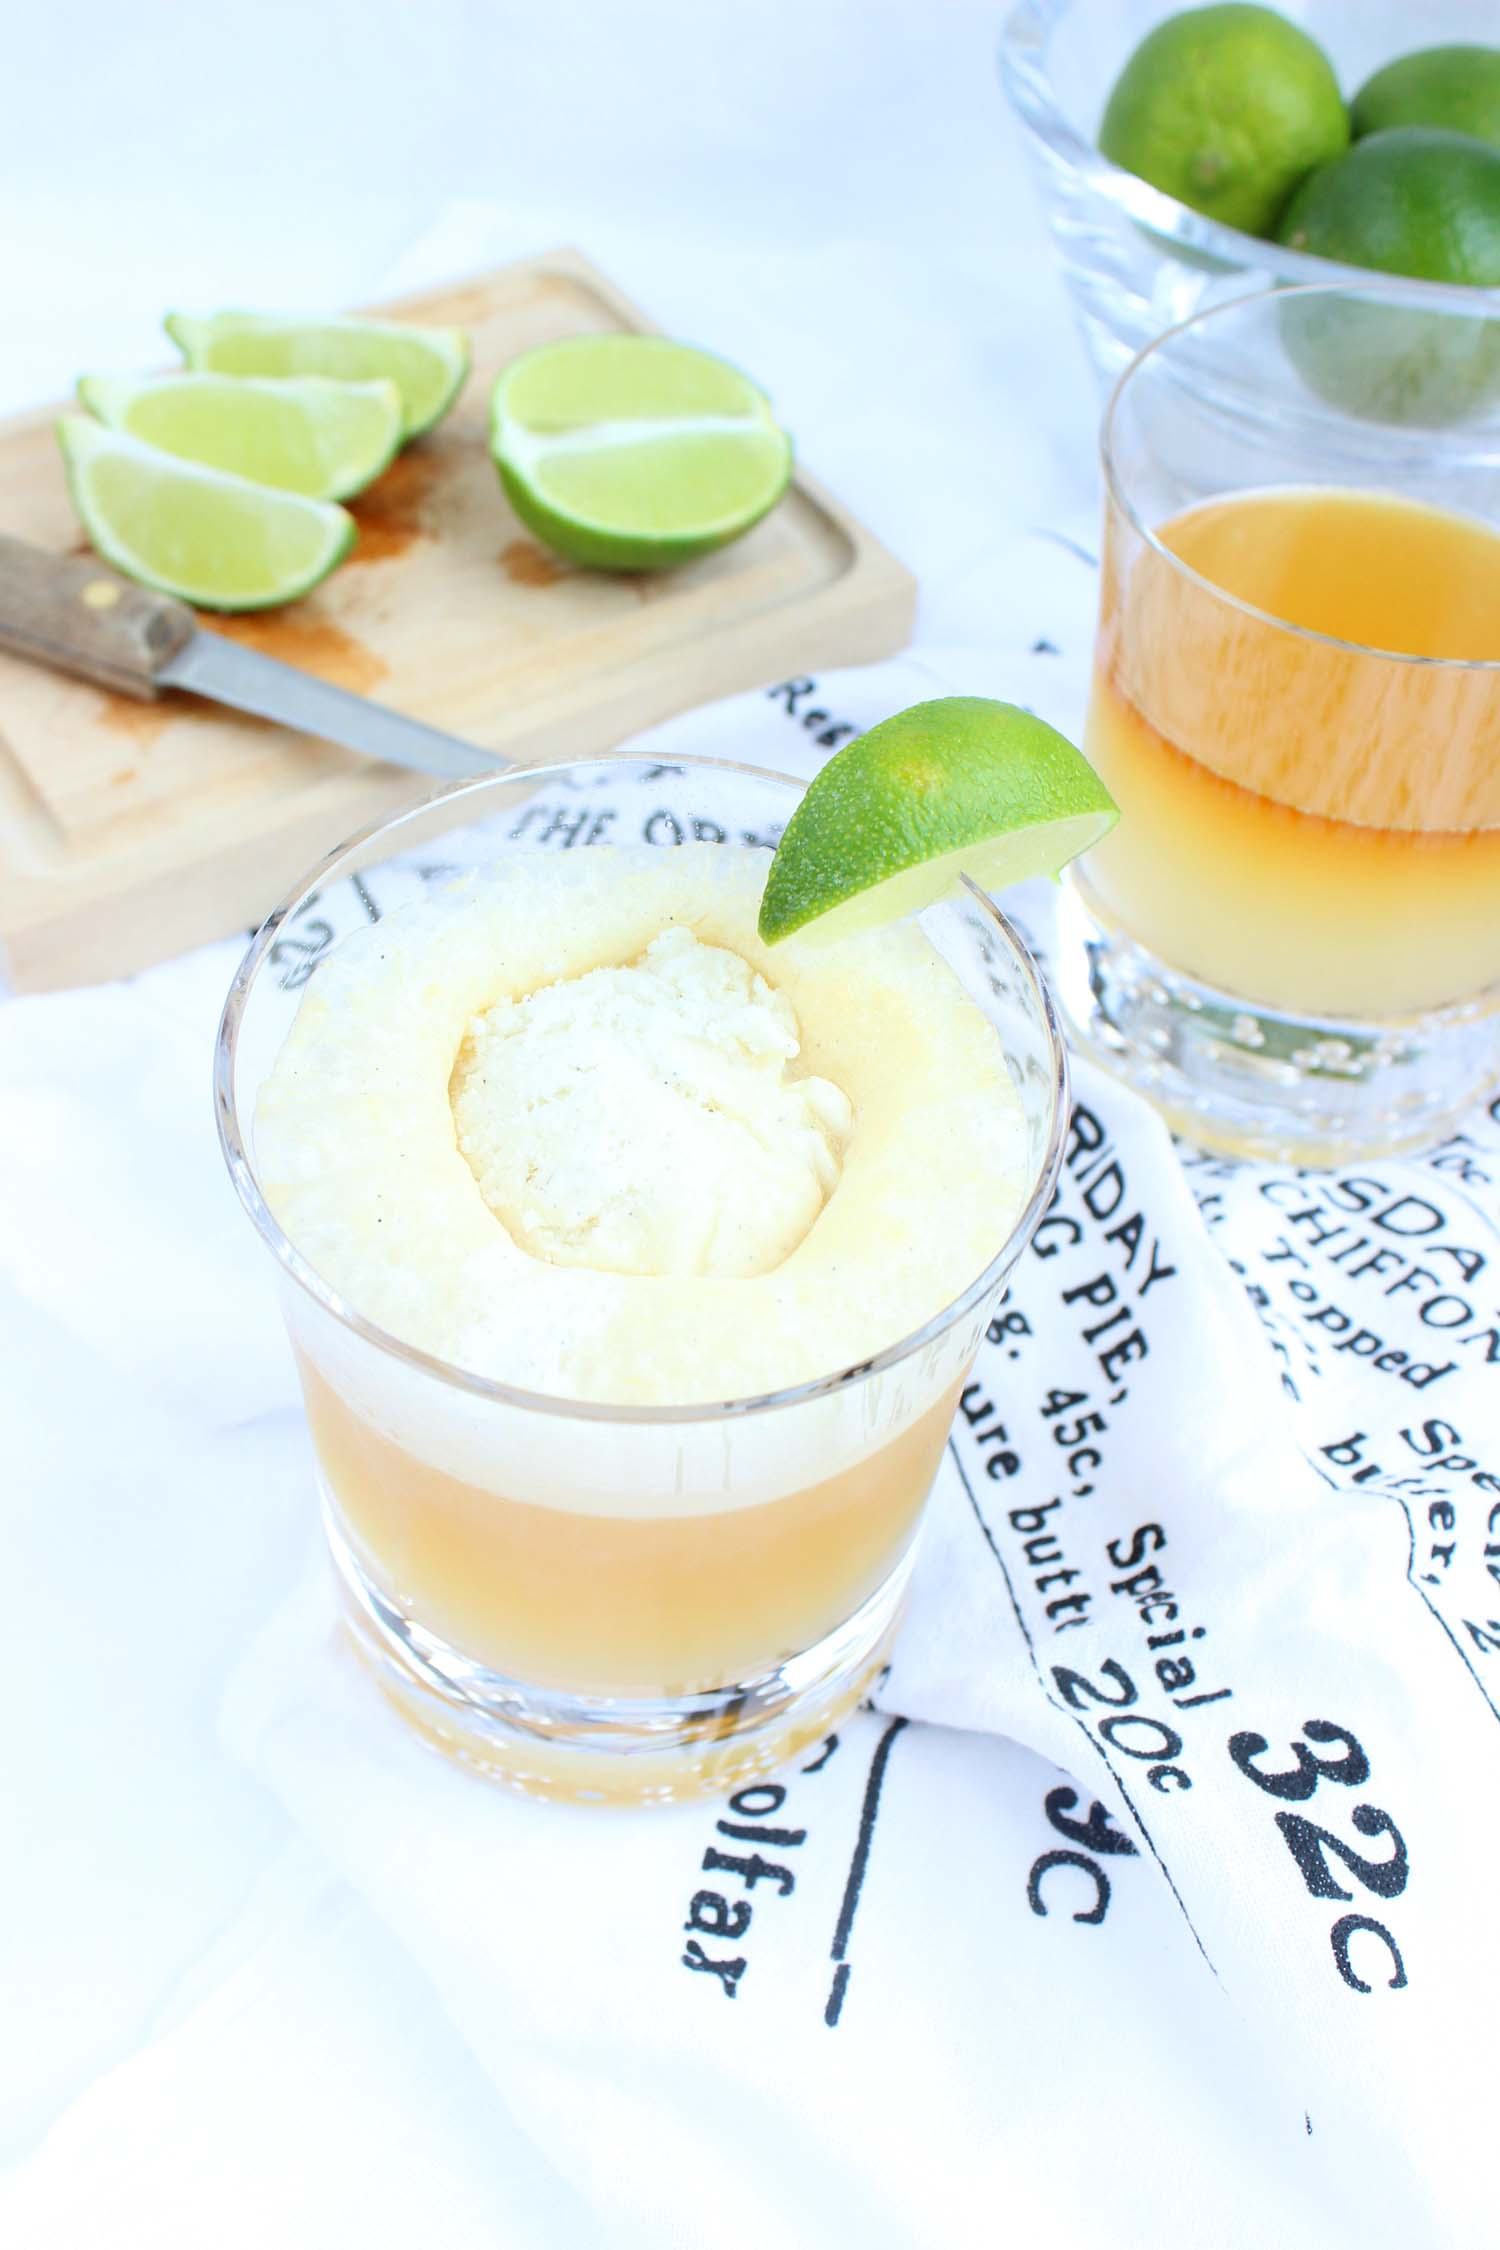 Dark N Stormy Ice Cream Float   | Image:   Laura Messersmith